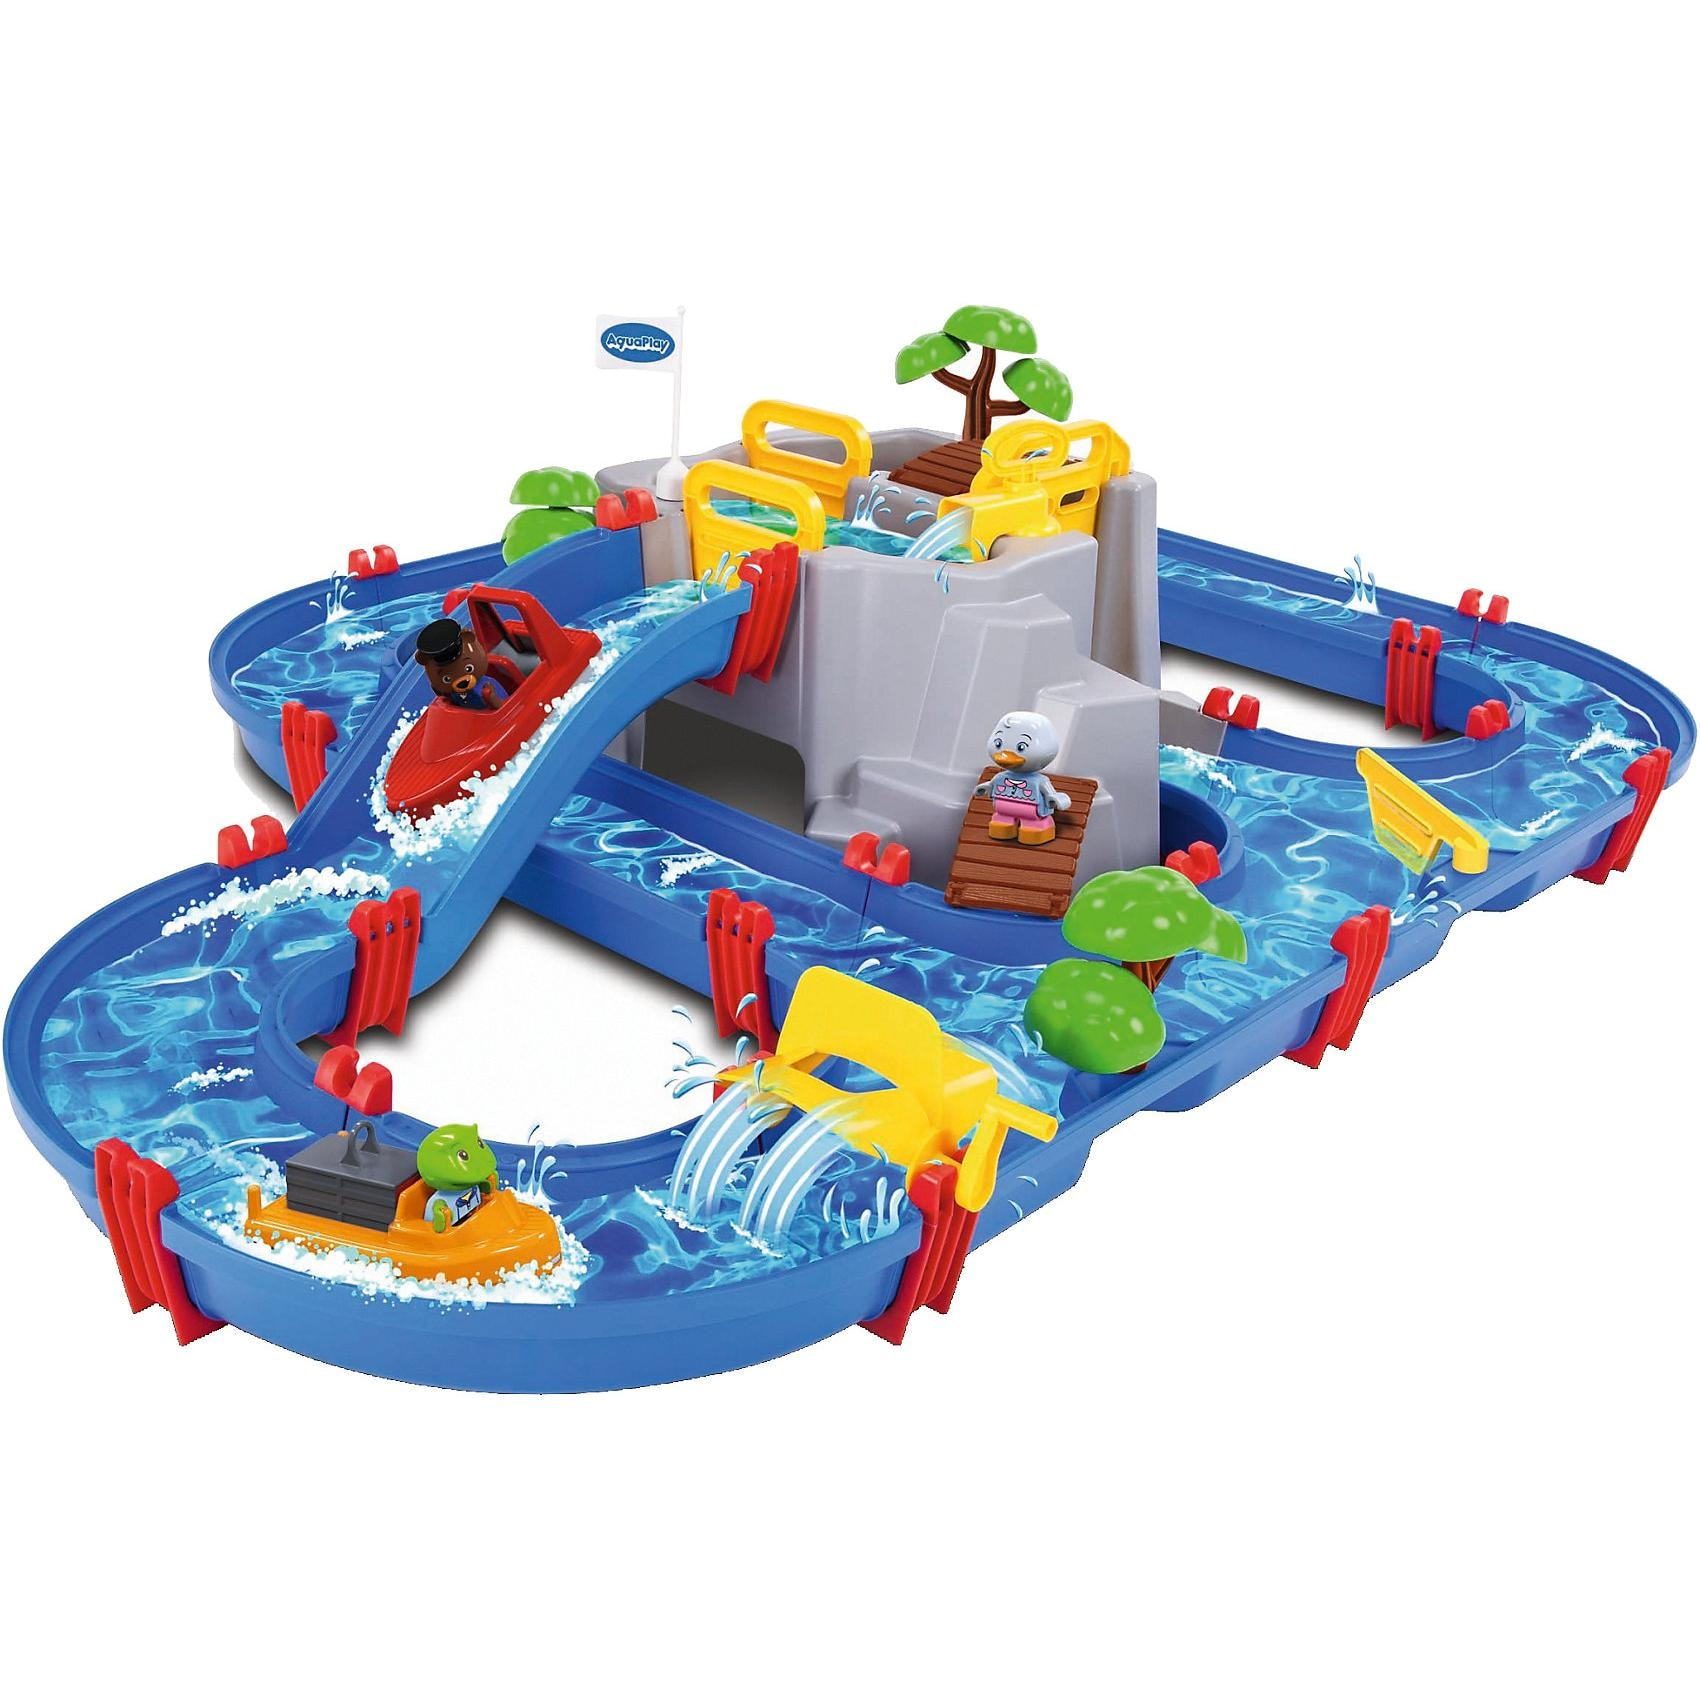 Aquaplay Wasserbahn Mountain Lake 128x88cm 42-teilig